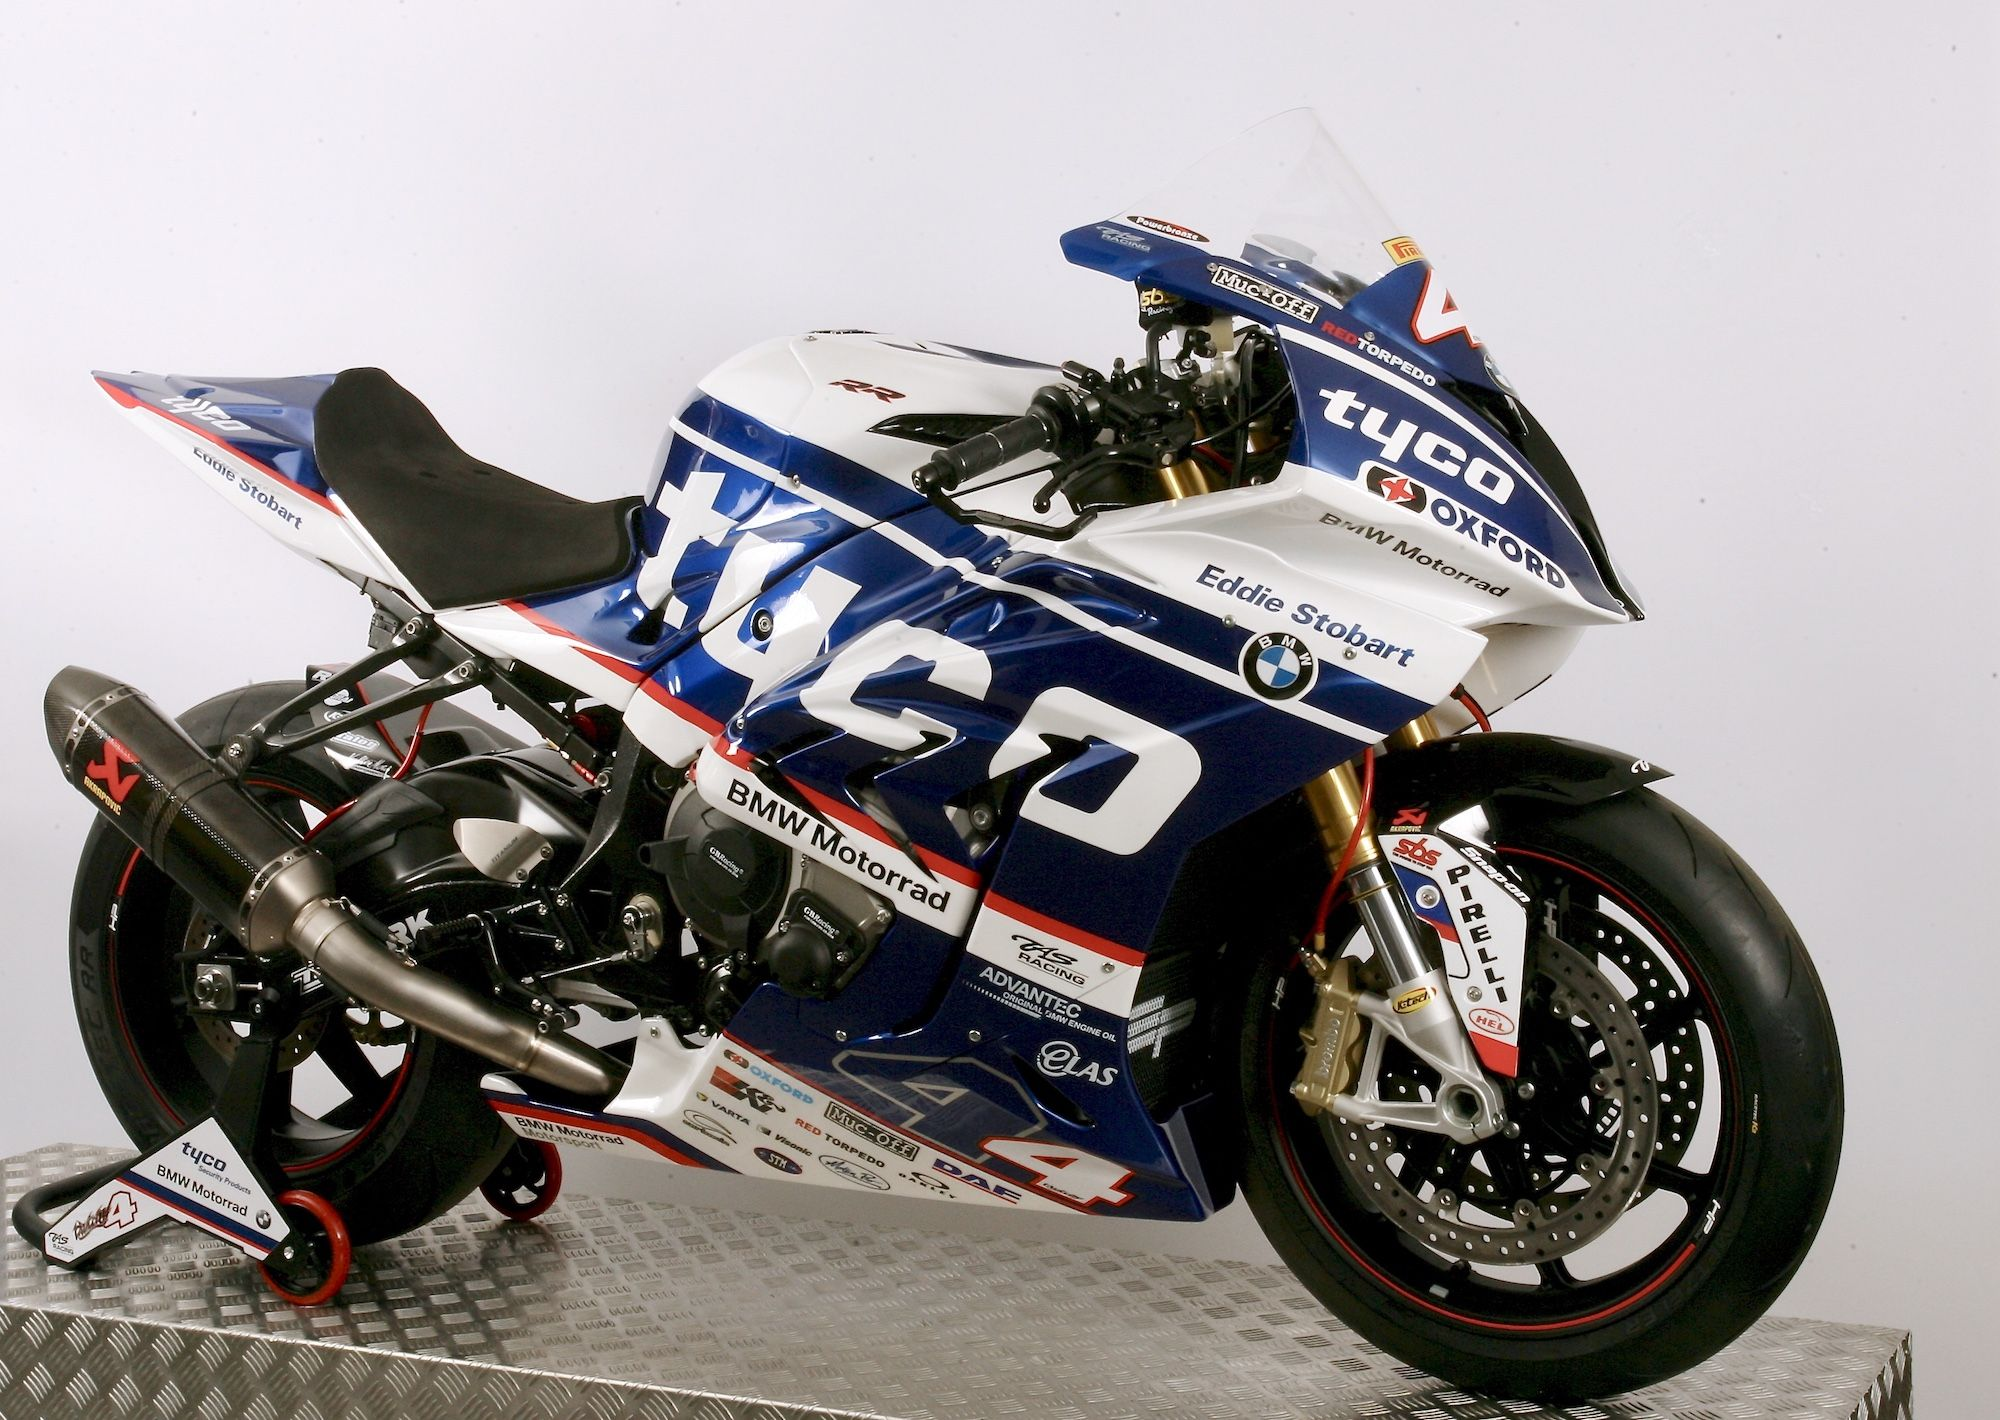 24 best motorcycle racing images on Pinterest